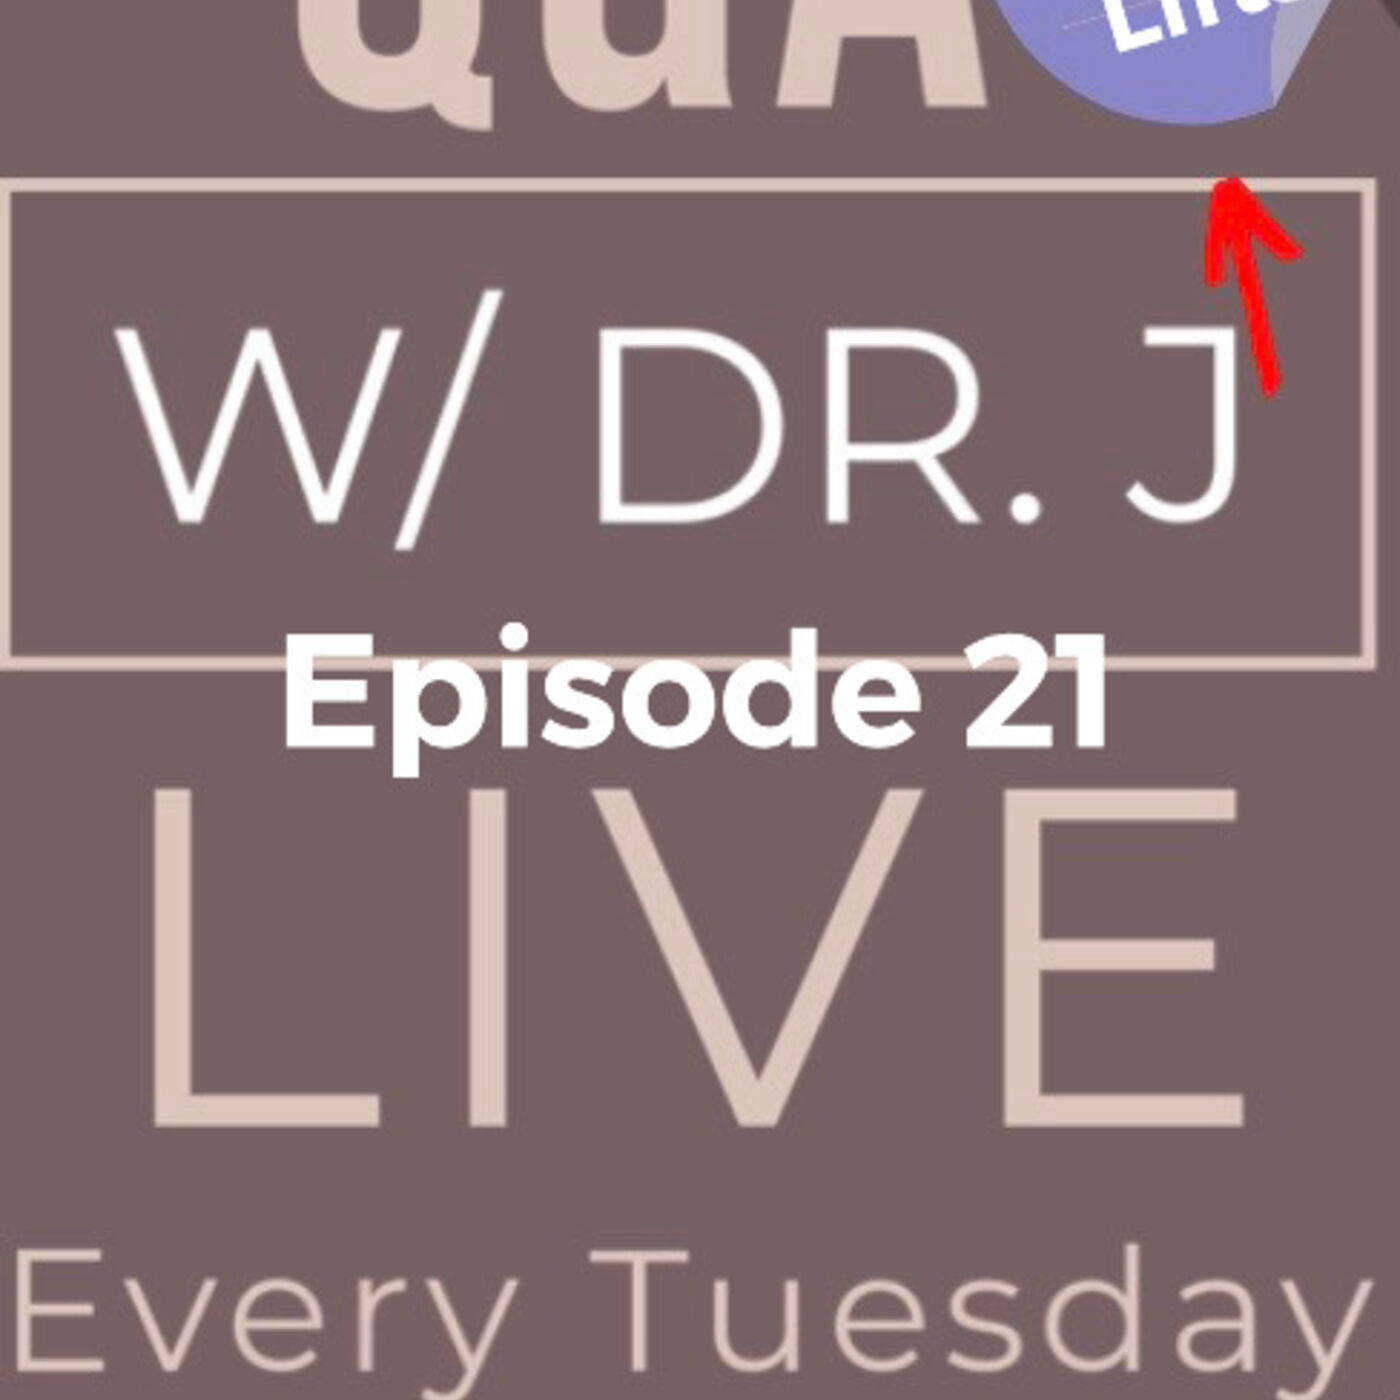 EP 21 Q&A w/ Dr J - All about Breast lifts with Dr Jeneby